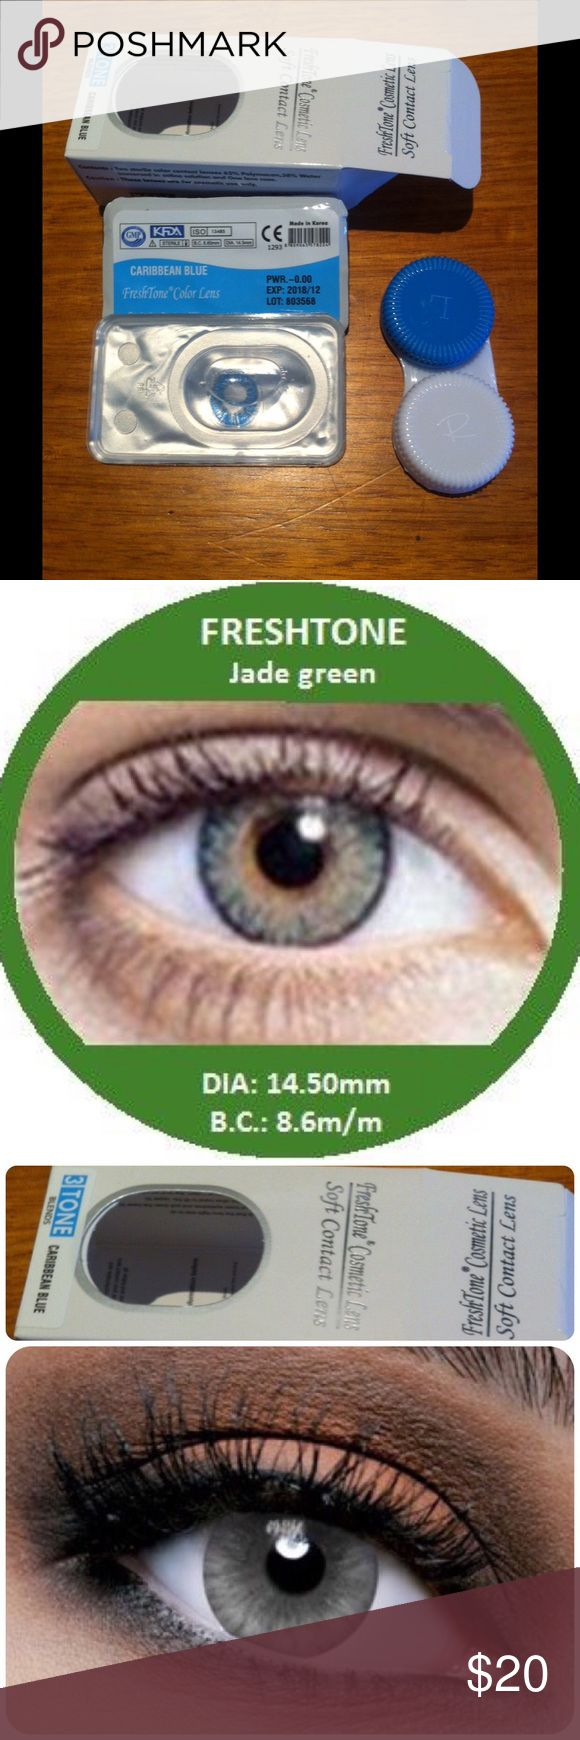 How to order colored contacts online - Freshtone Jade Green Buy Best Quality Non Prescription Colored Contact Lenses 1